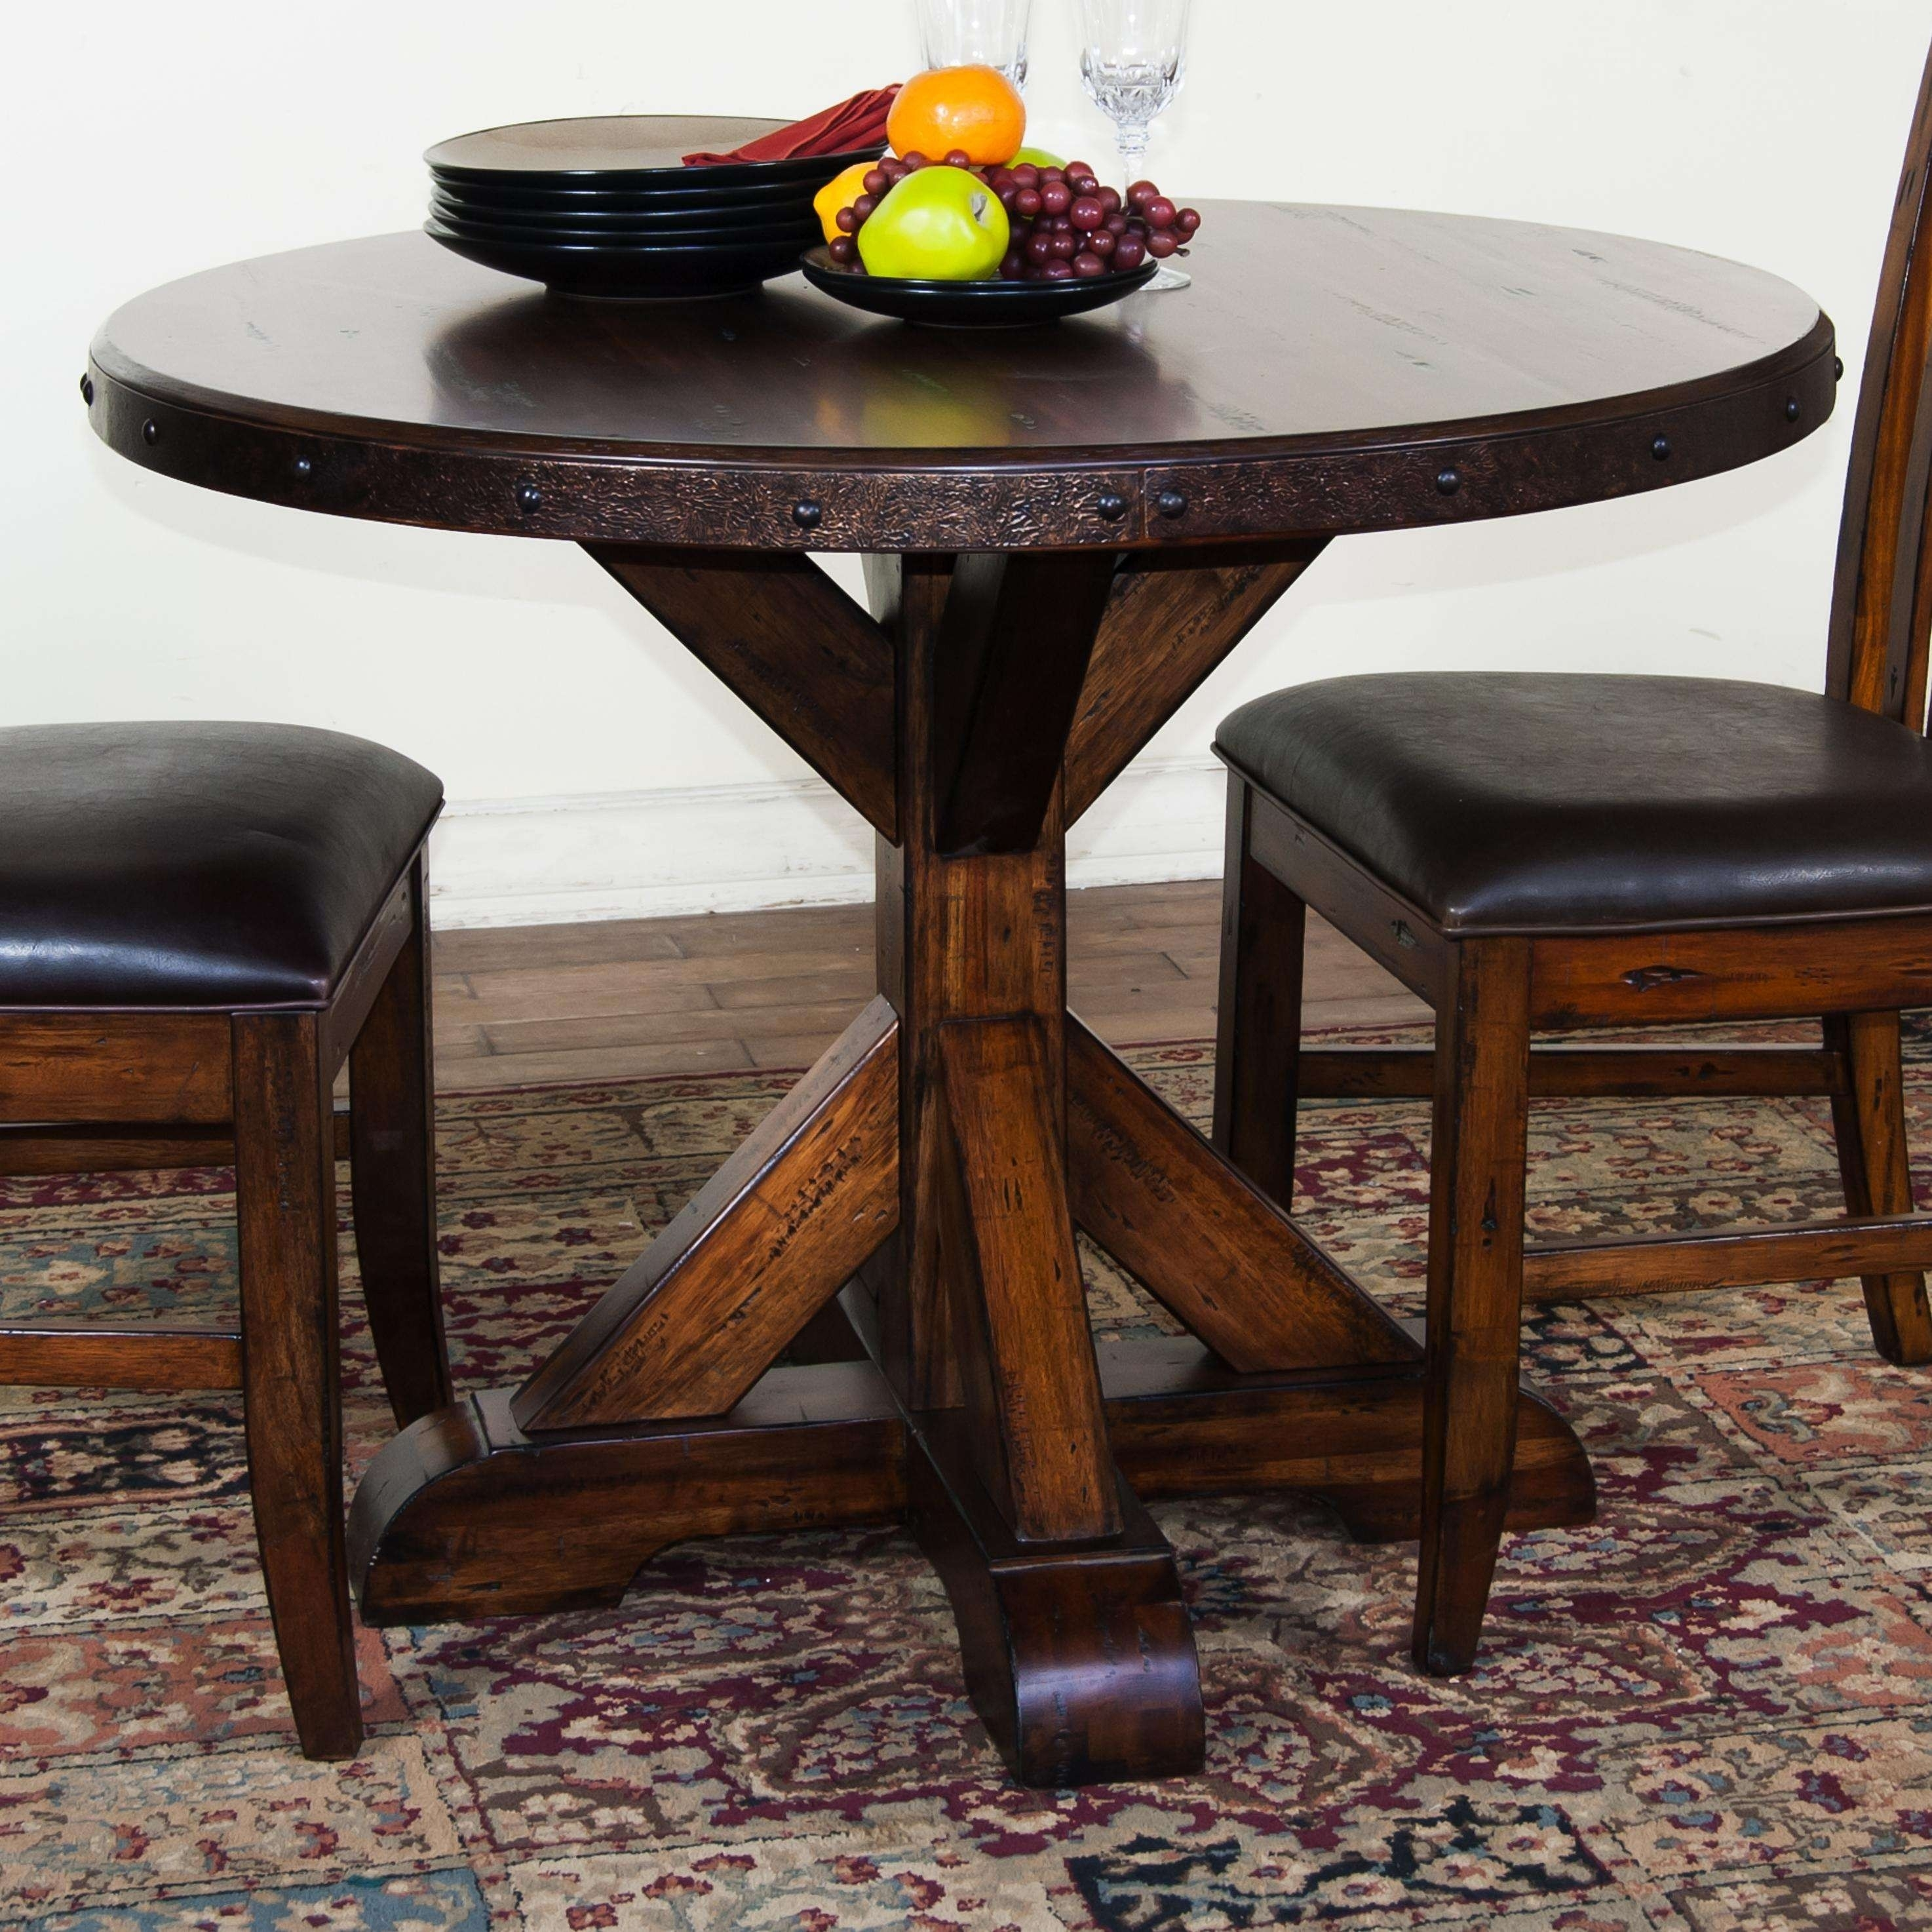 Bristol Dining Table Lovely Dining Tables Black Brown Rustic Round Intended For Most Current Magnolia Home Breakfast Round Black Dining Tables (Image 6 of 20)